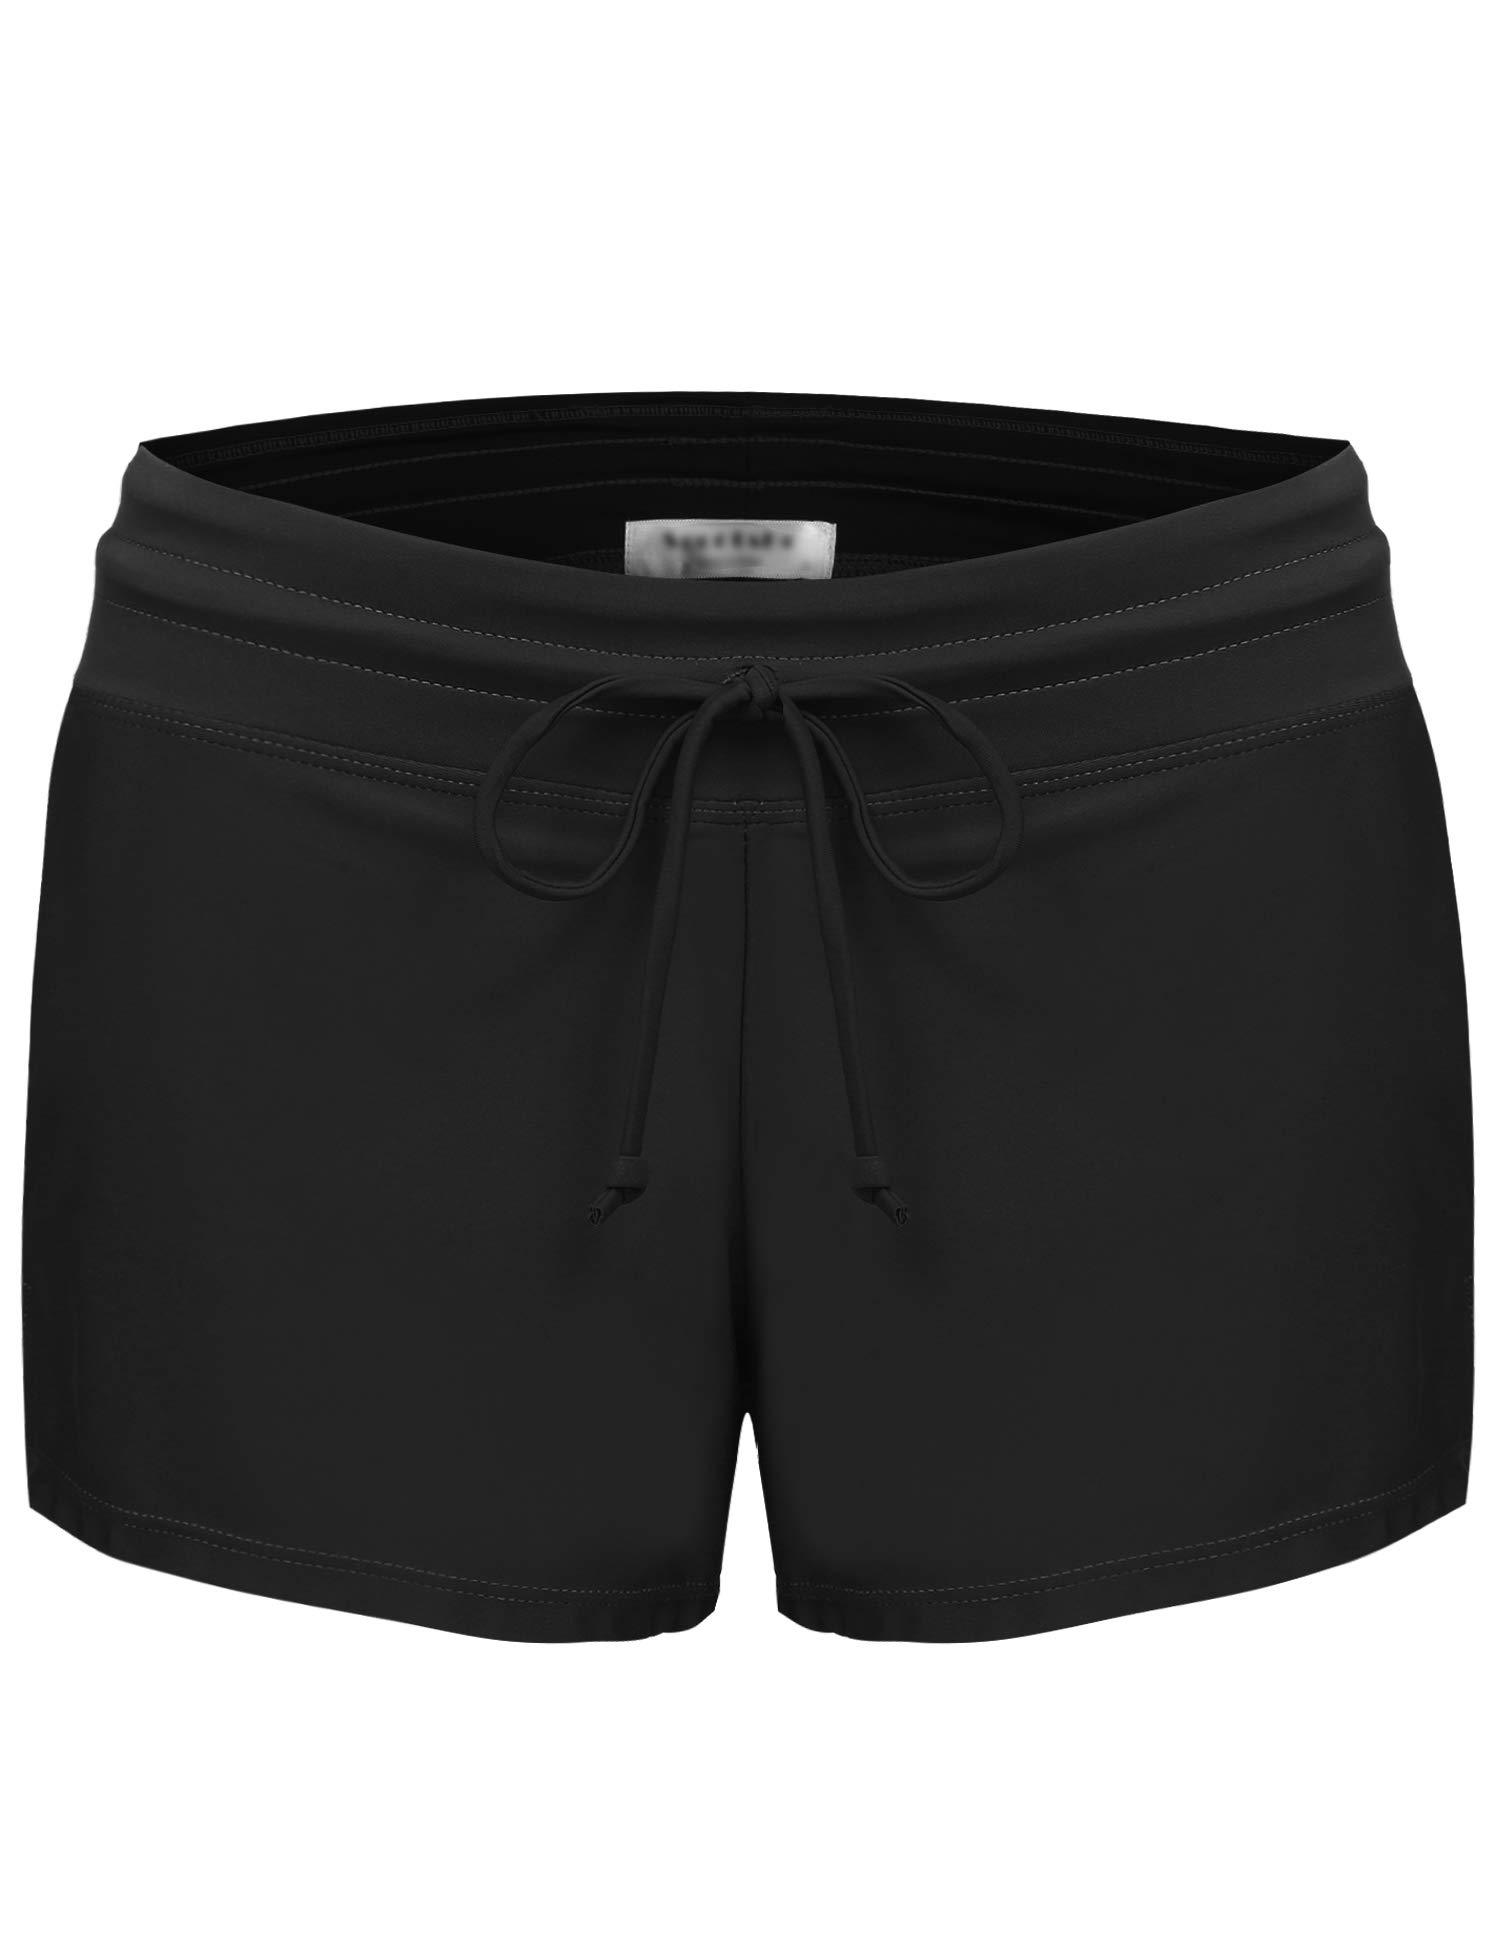 These swim shorts by Lazosal are true to size!